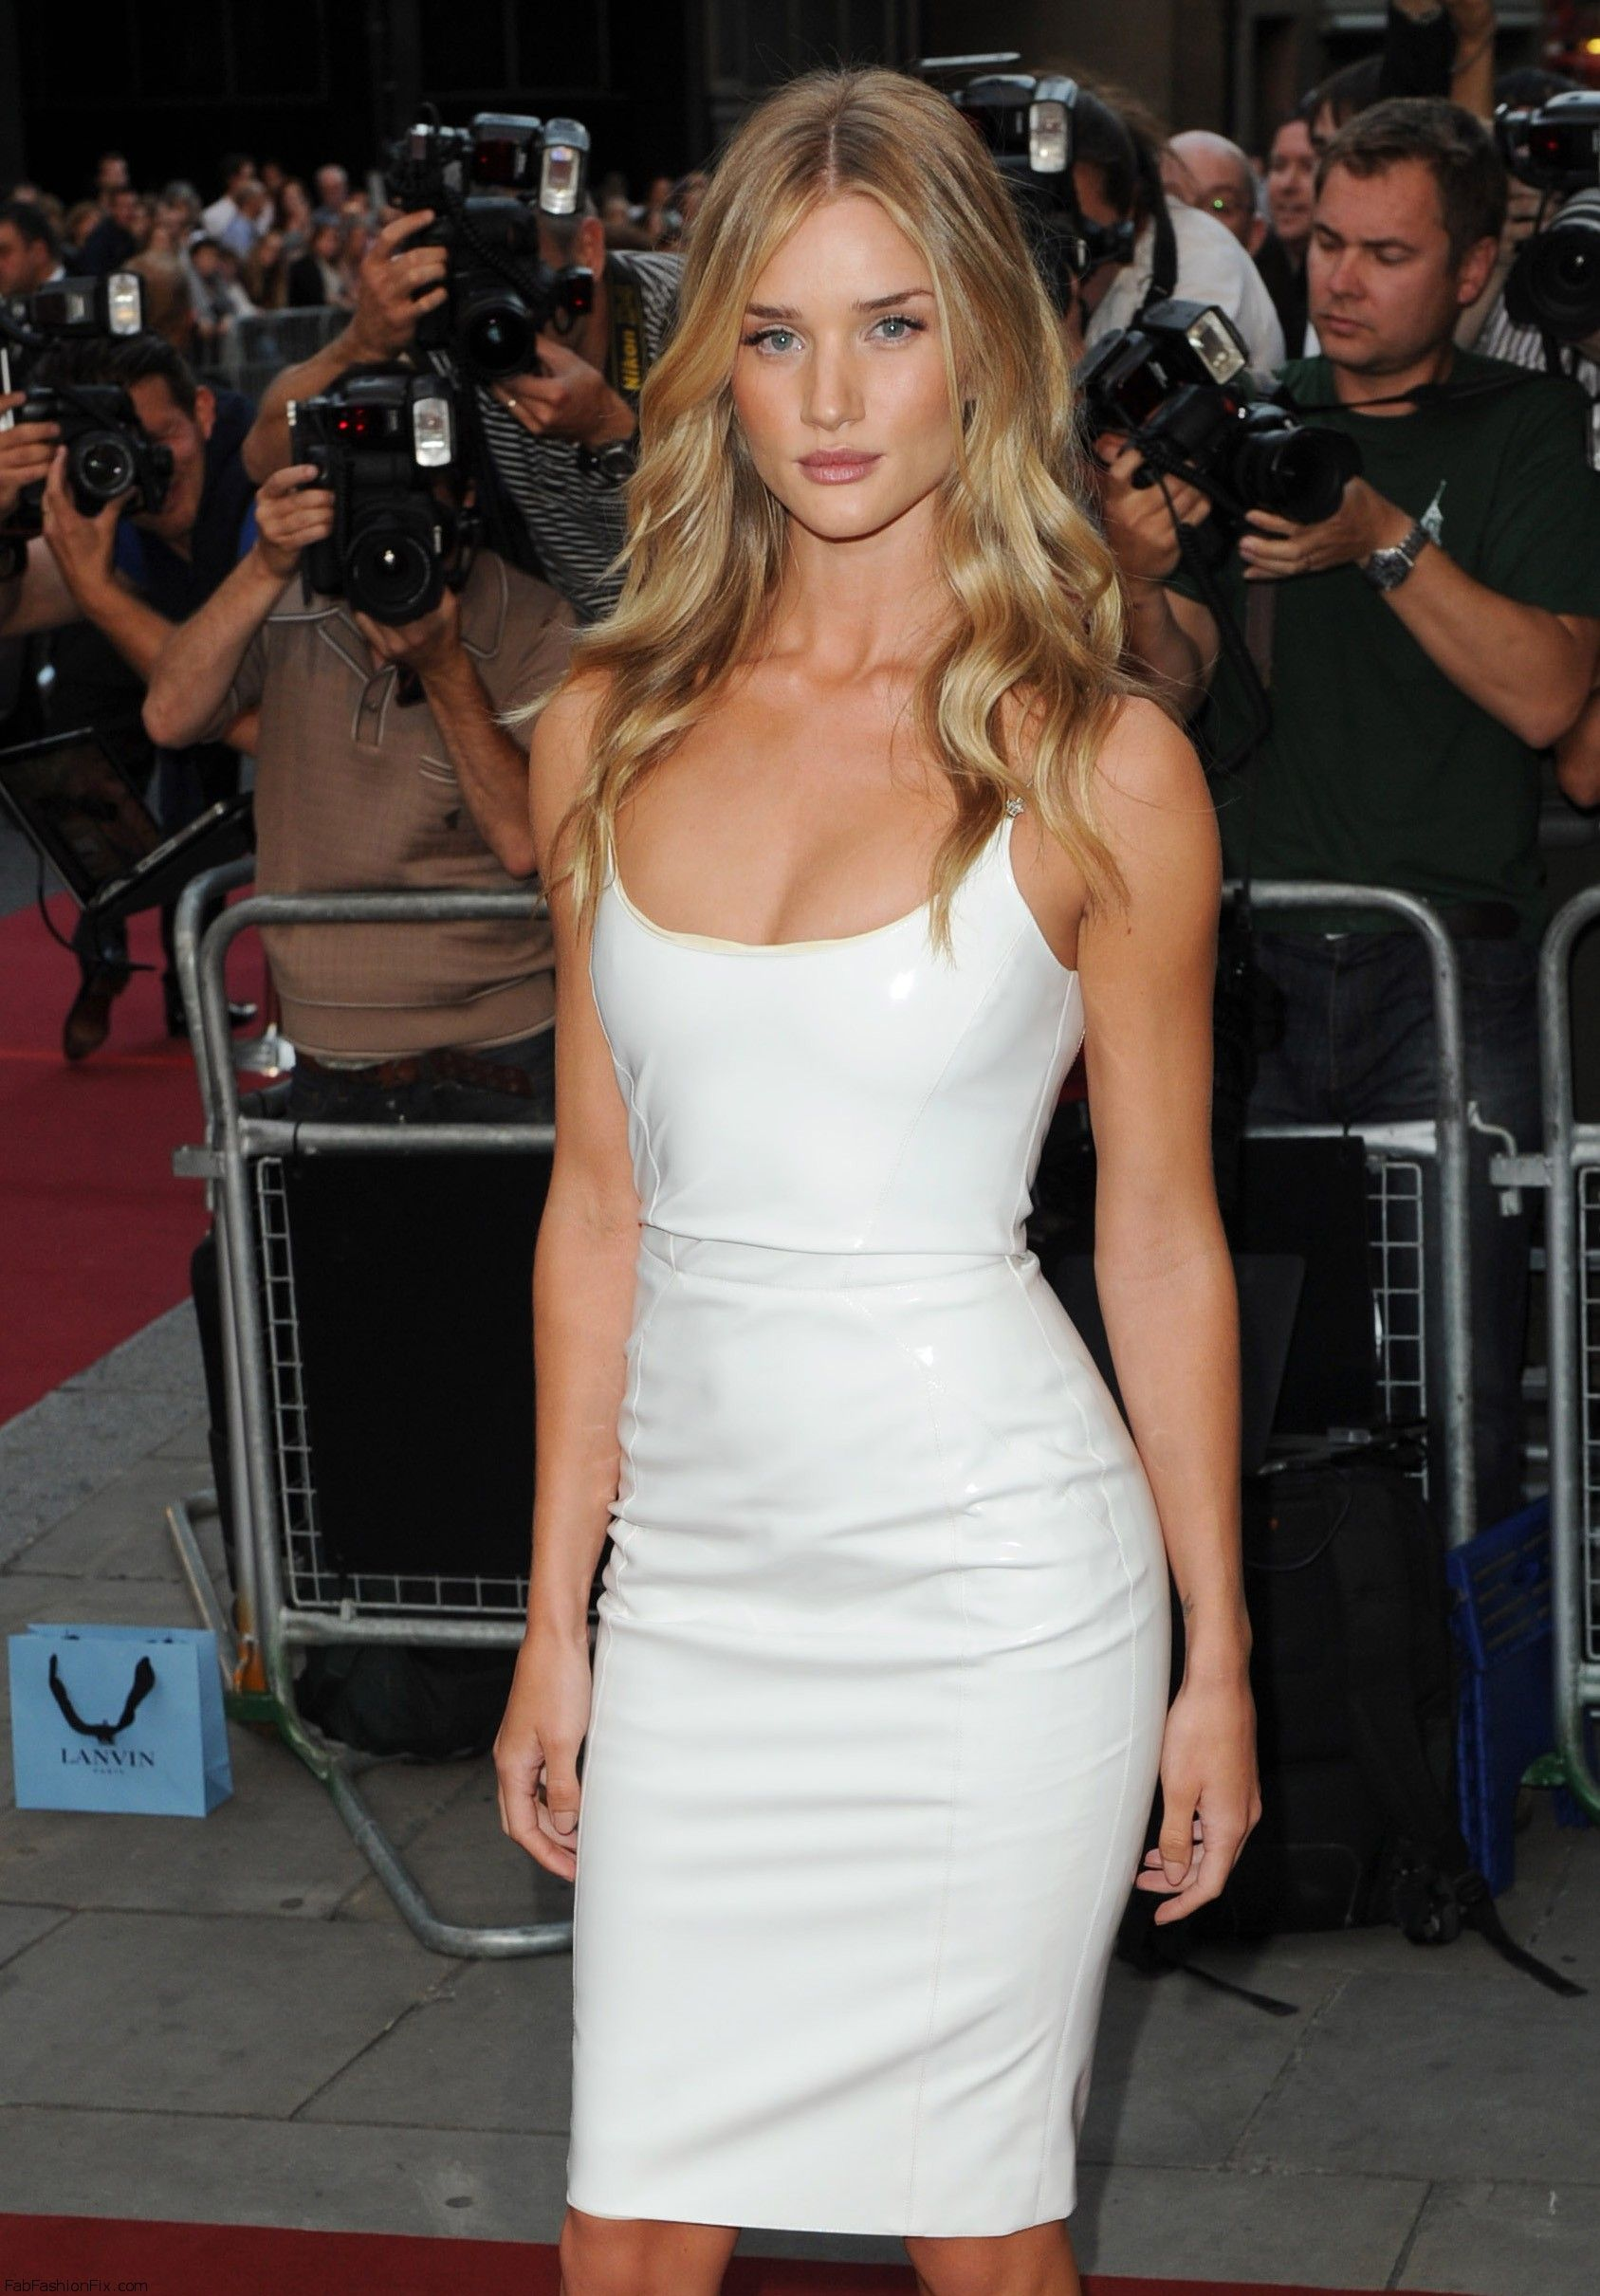 celebrity-paradise.com-The Elder-Rosie Huntington-Whiteley _2_